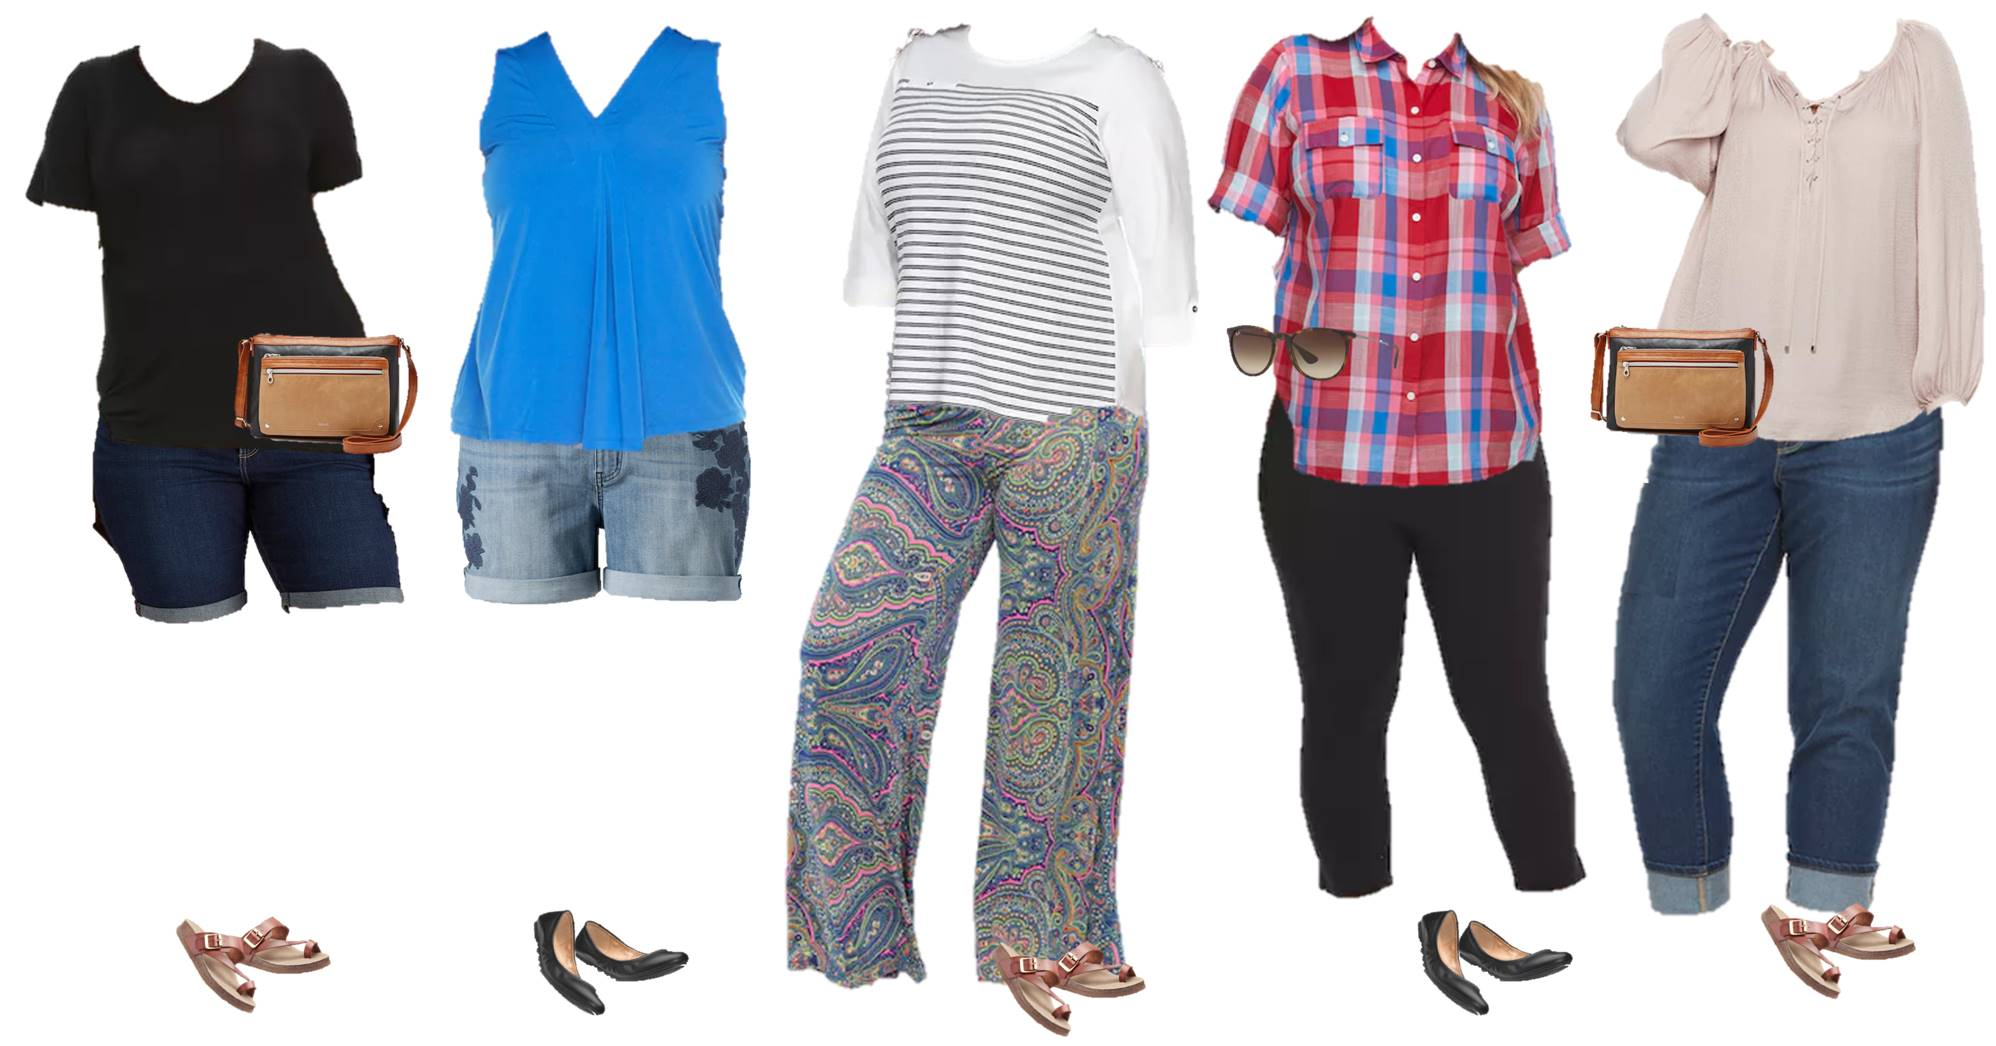 plus size capsule wardrobe for spring and summer